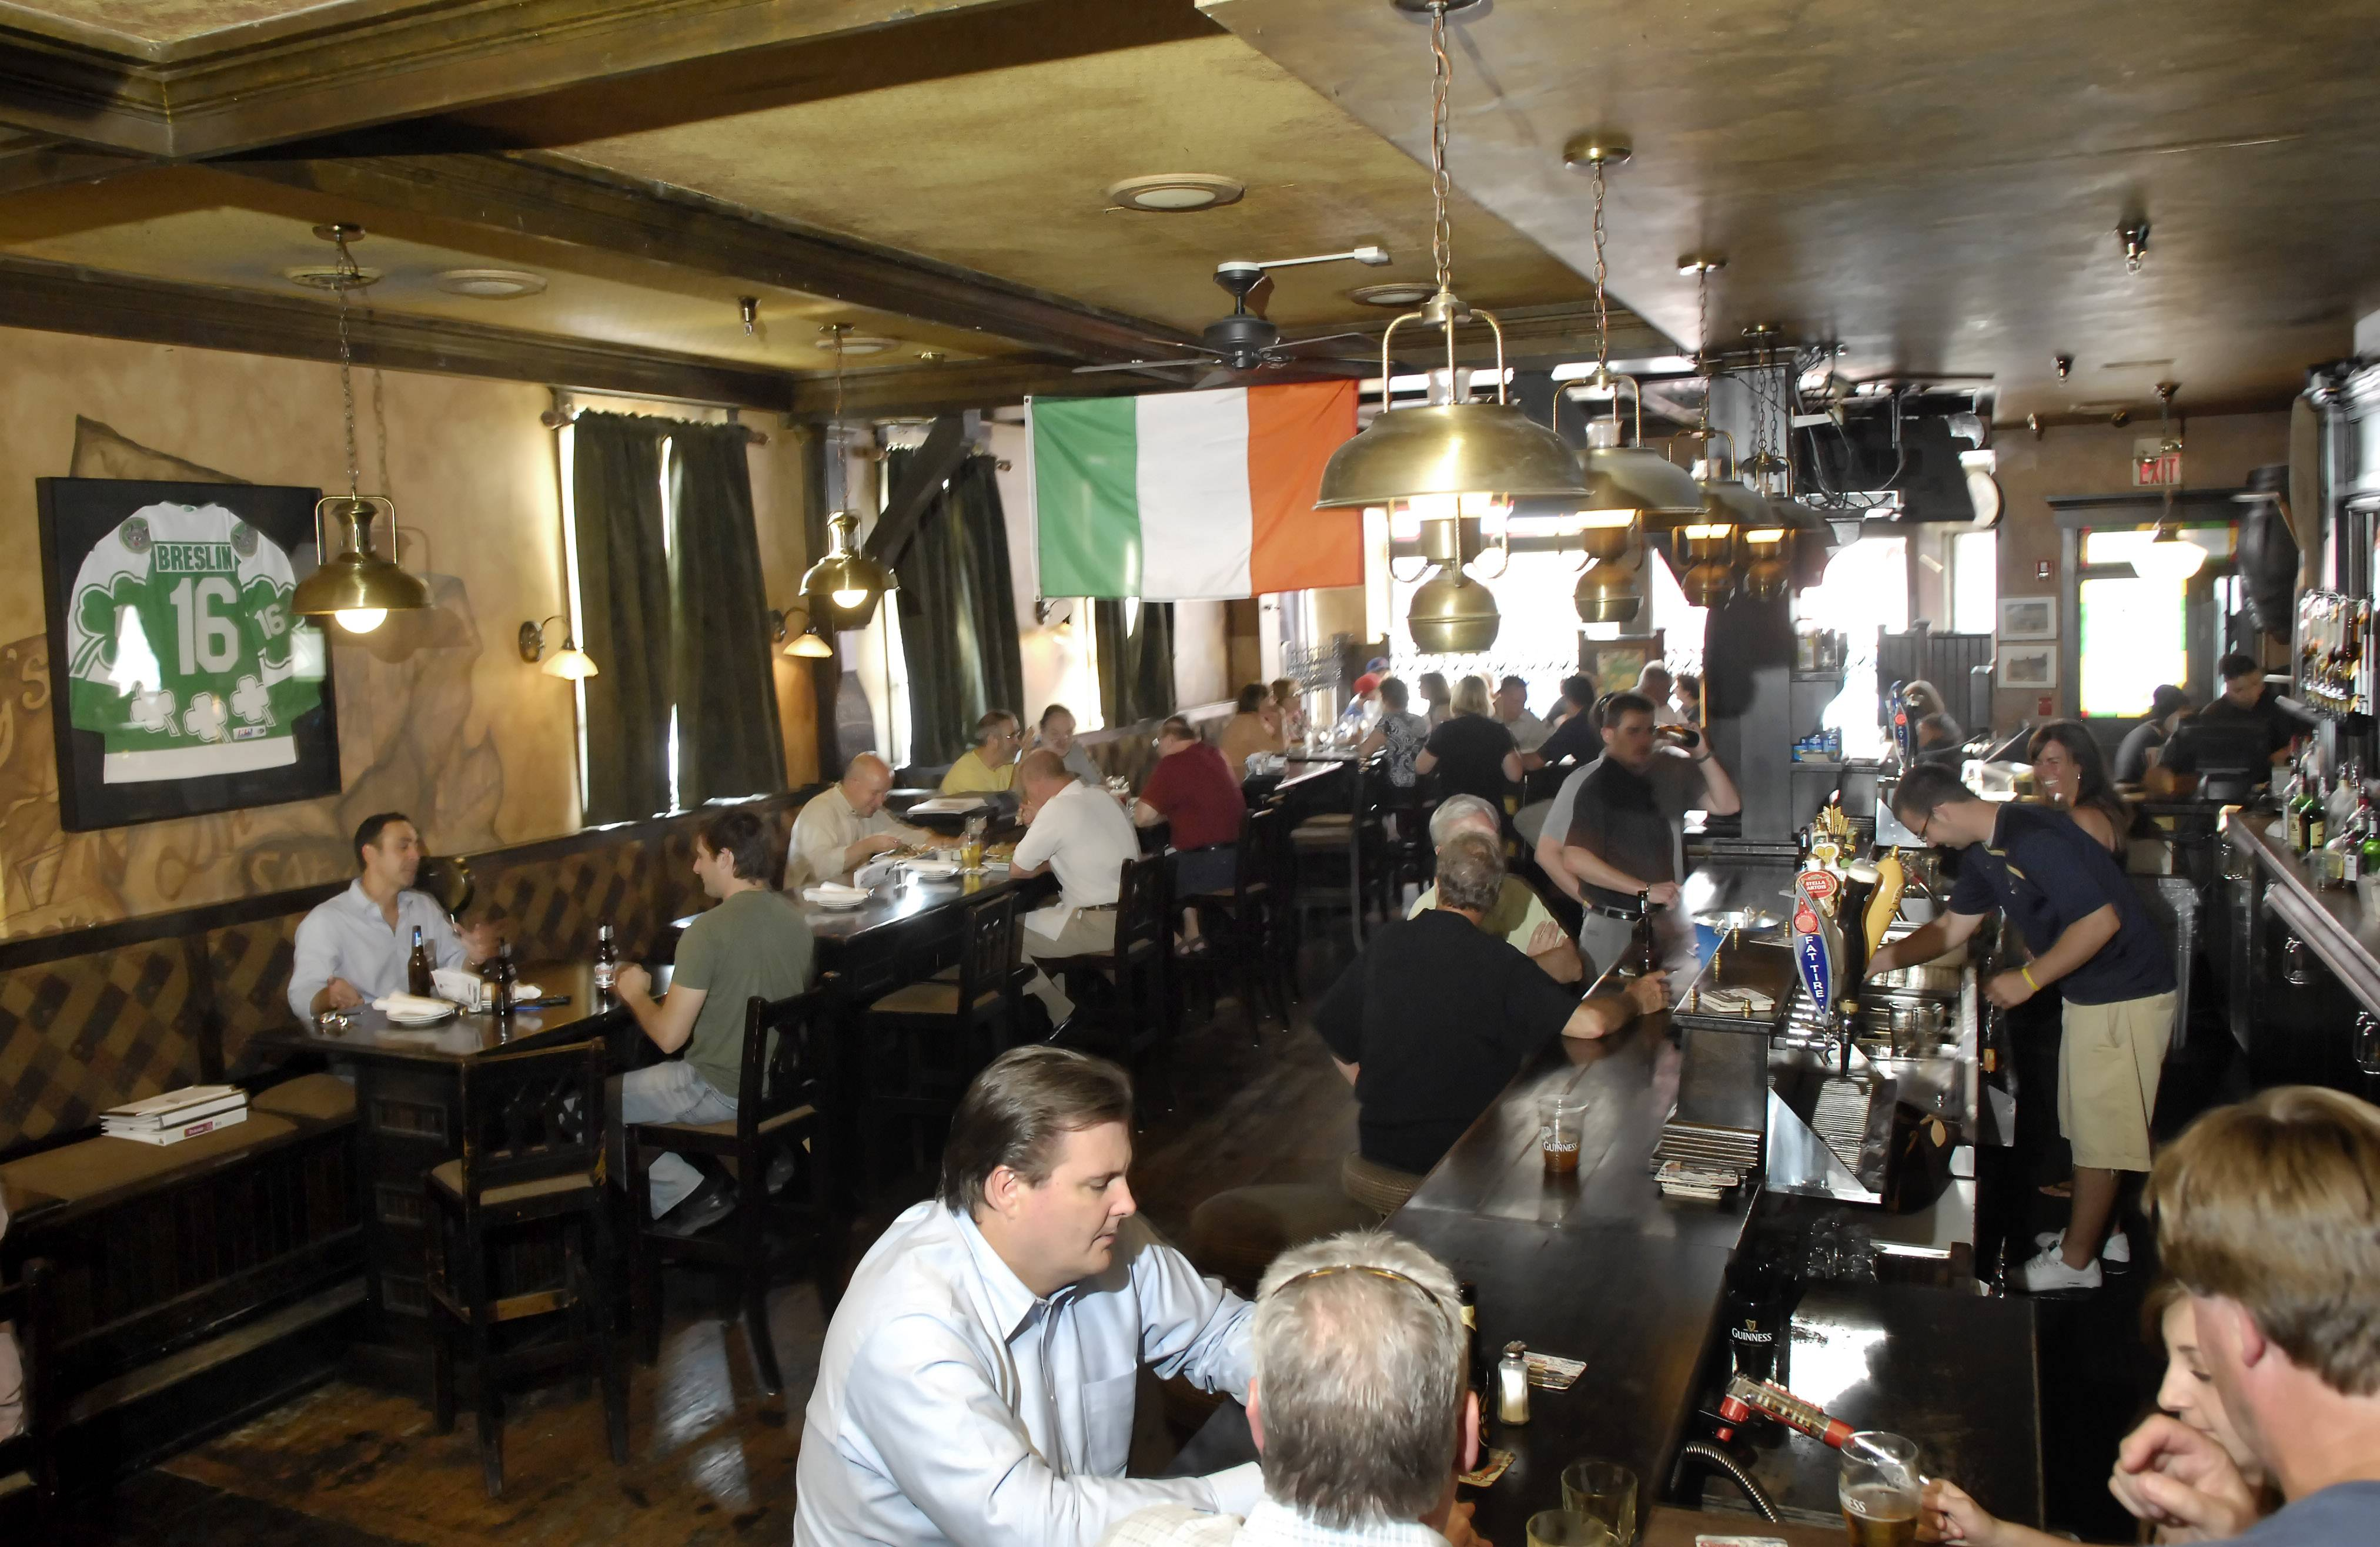 McNally's Traditional Irish Pub at 201 E. Main St., St. Charles.